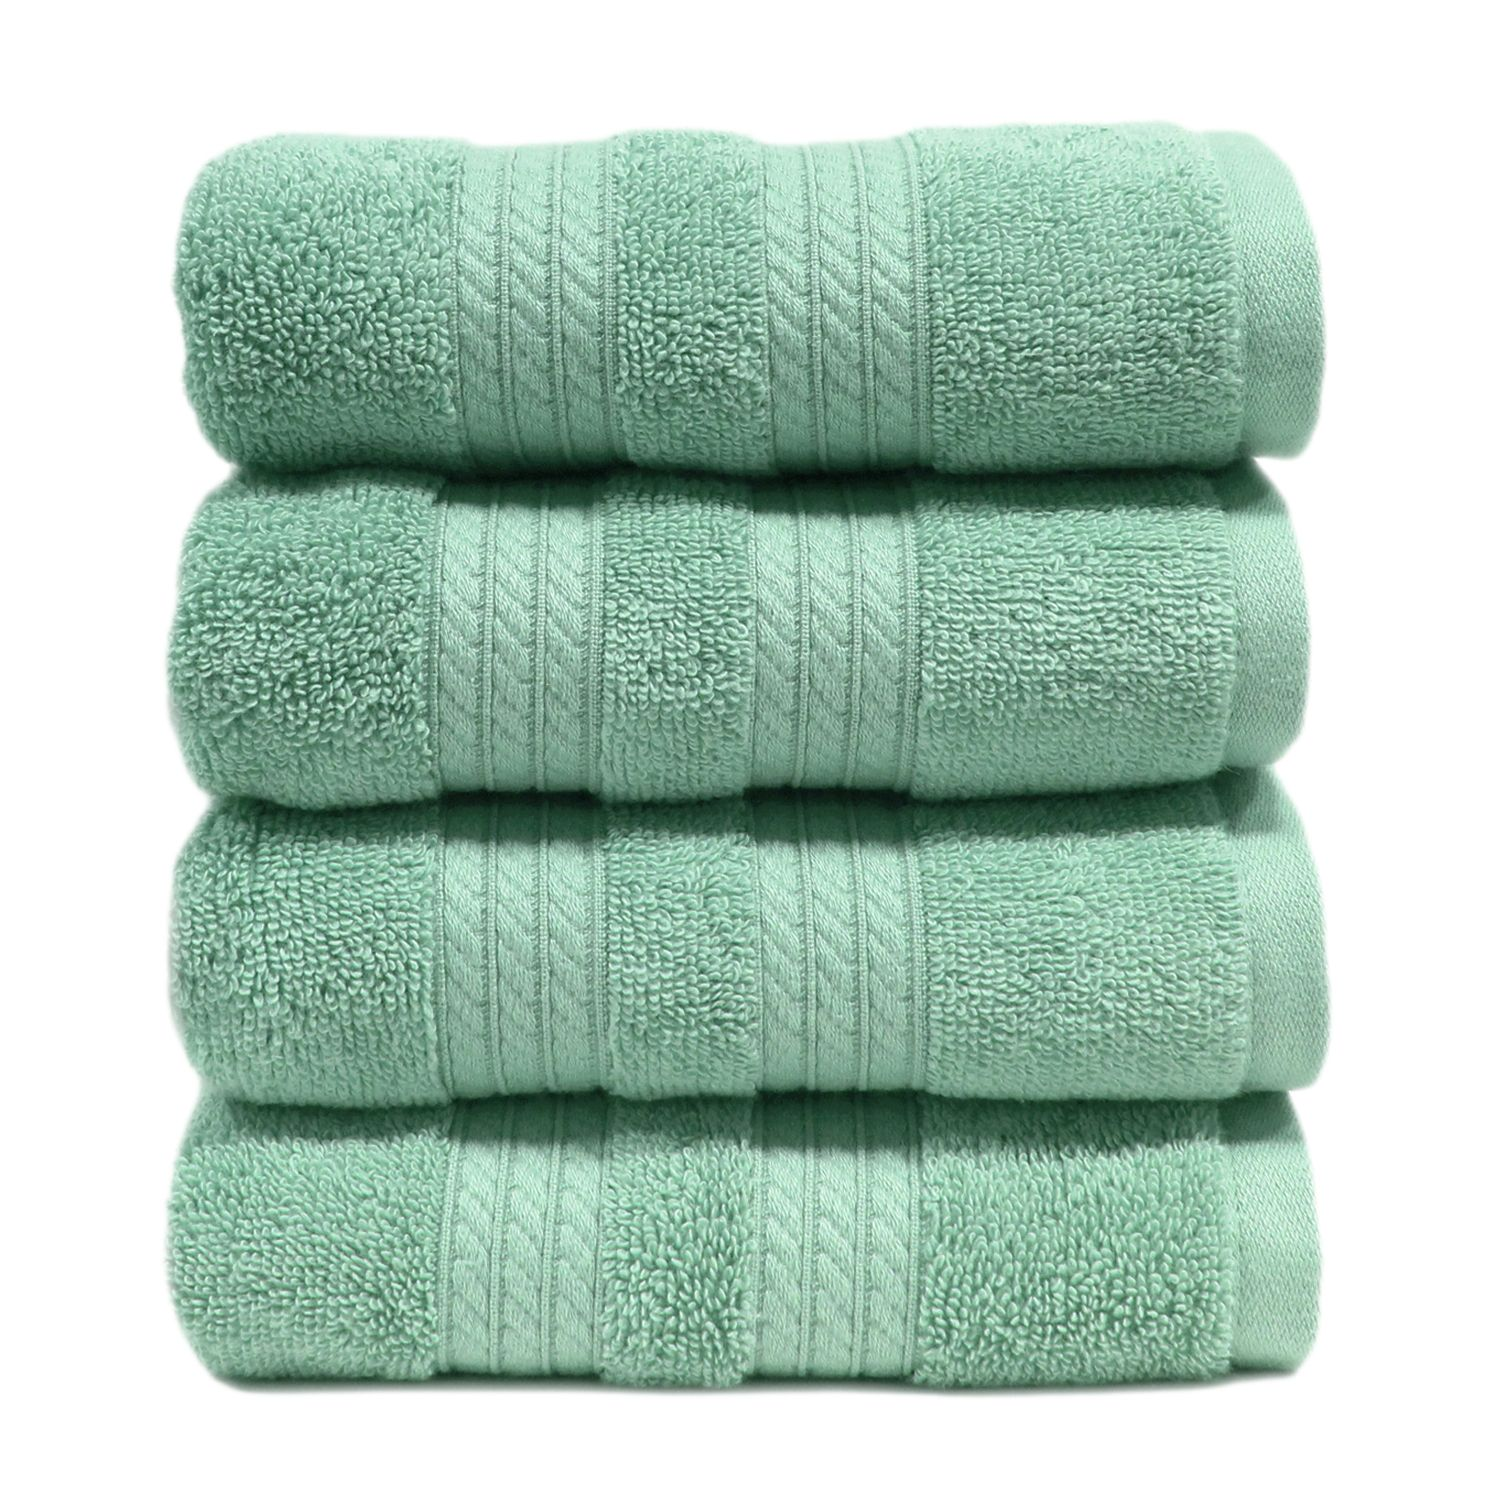 "100% Cotton Luxury Hand Towel, 16"" x 30"" - Light Blue"